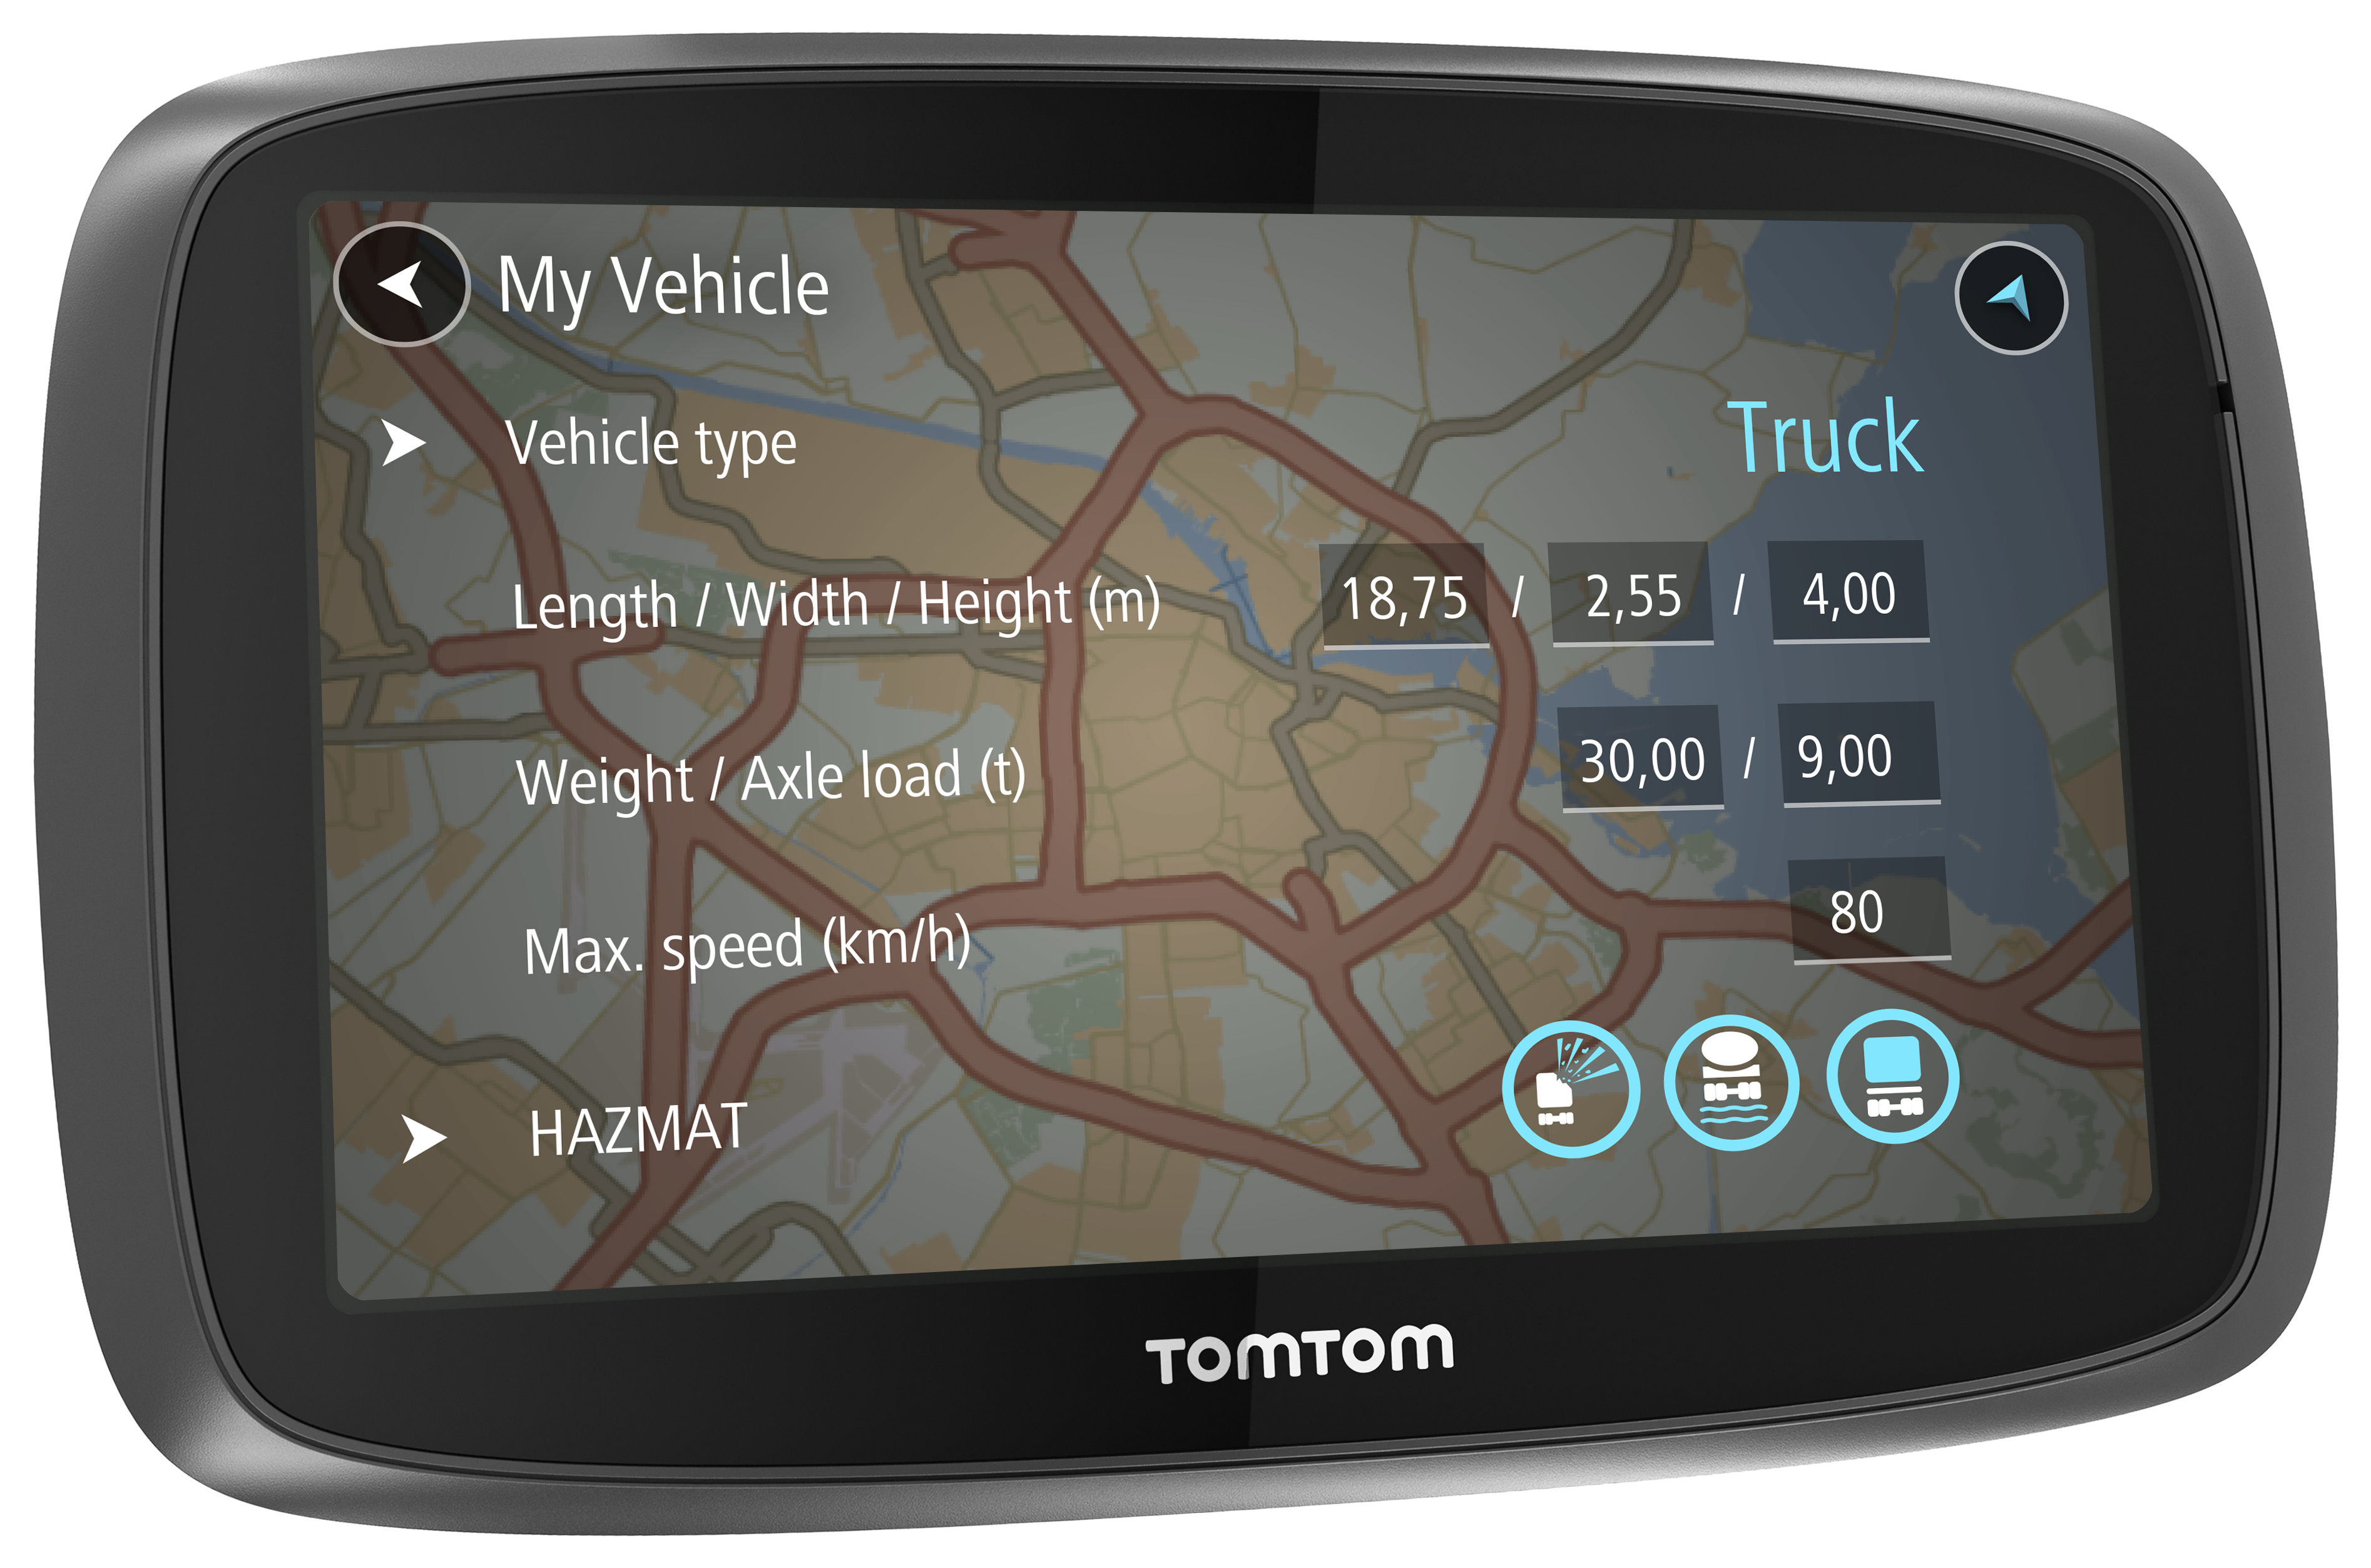 new tomtom trucker 5000 5 gps satnav truck hgv free eu lifetime maps 1yr traffc sustuu. Black Bedroom Furniture Sets. Home Design Ideas